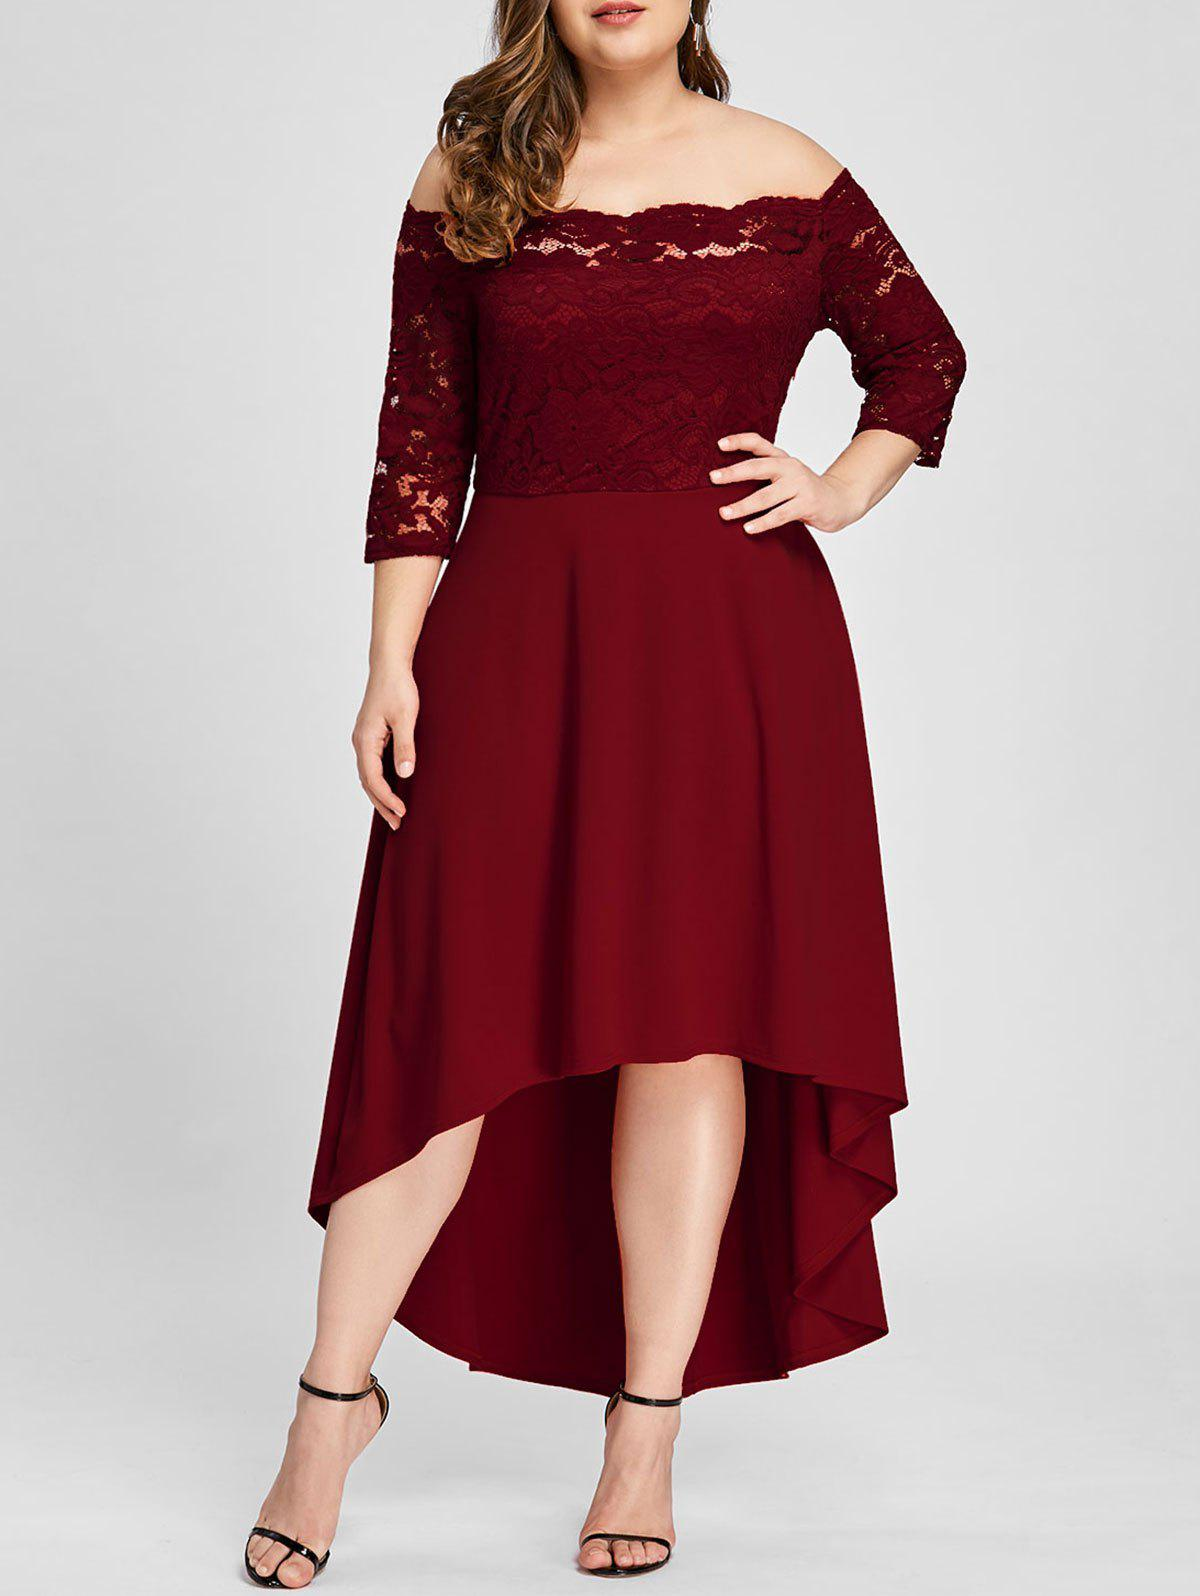 2018 Plus Size Lace Off Shoulder Flare Dress Wine Red Xl In Lace